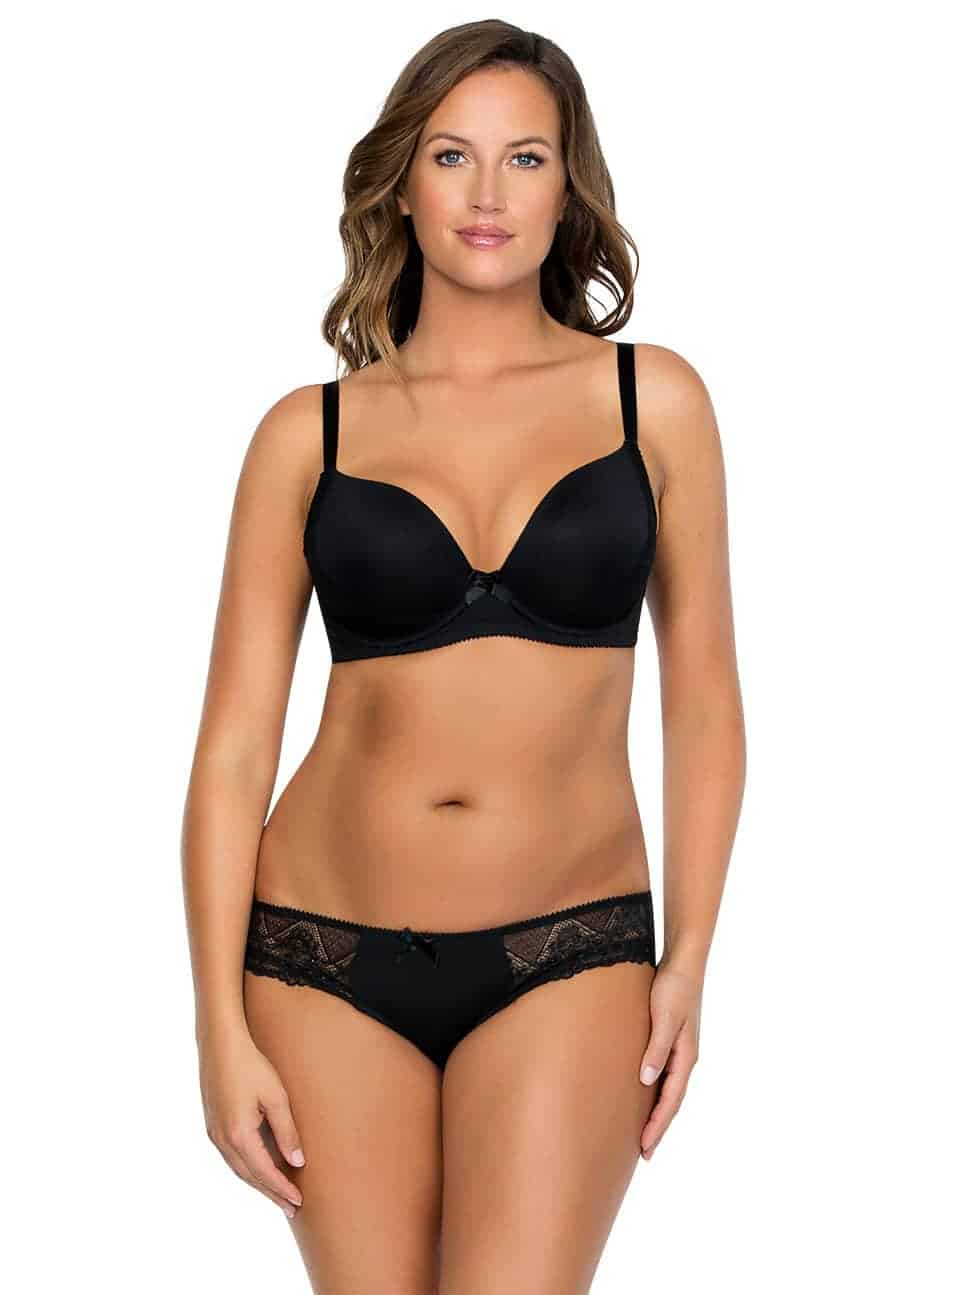 Casey PlungeMoldedBra2801 Brief2803 Black Front copy 2 - Casey Brief - Black - 2803